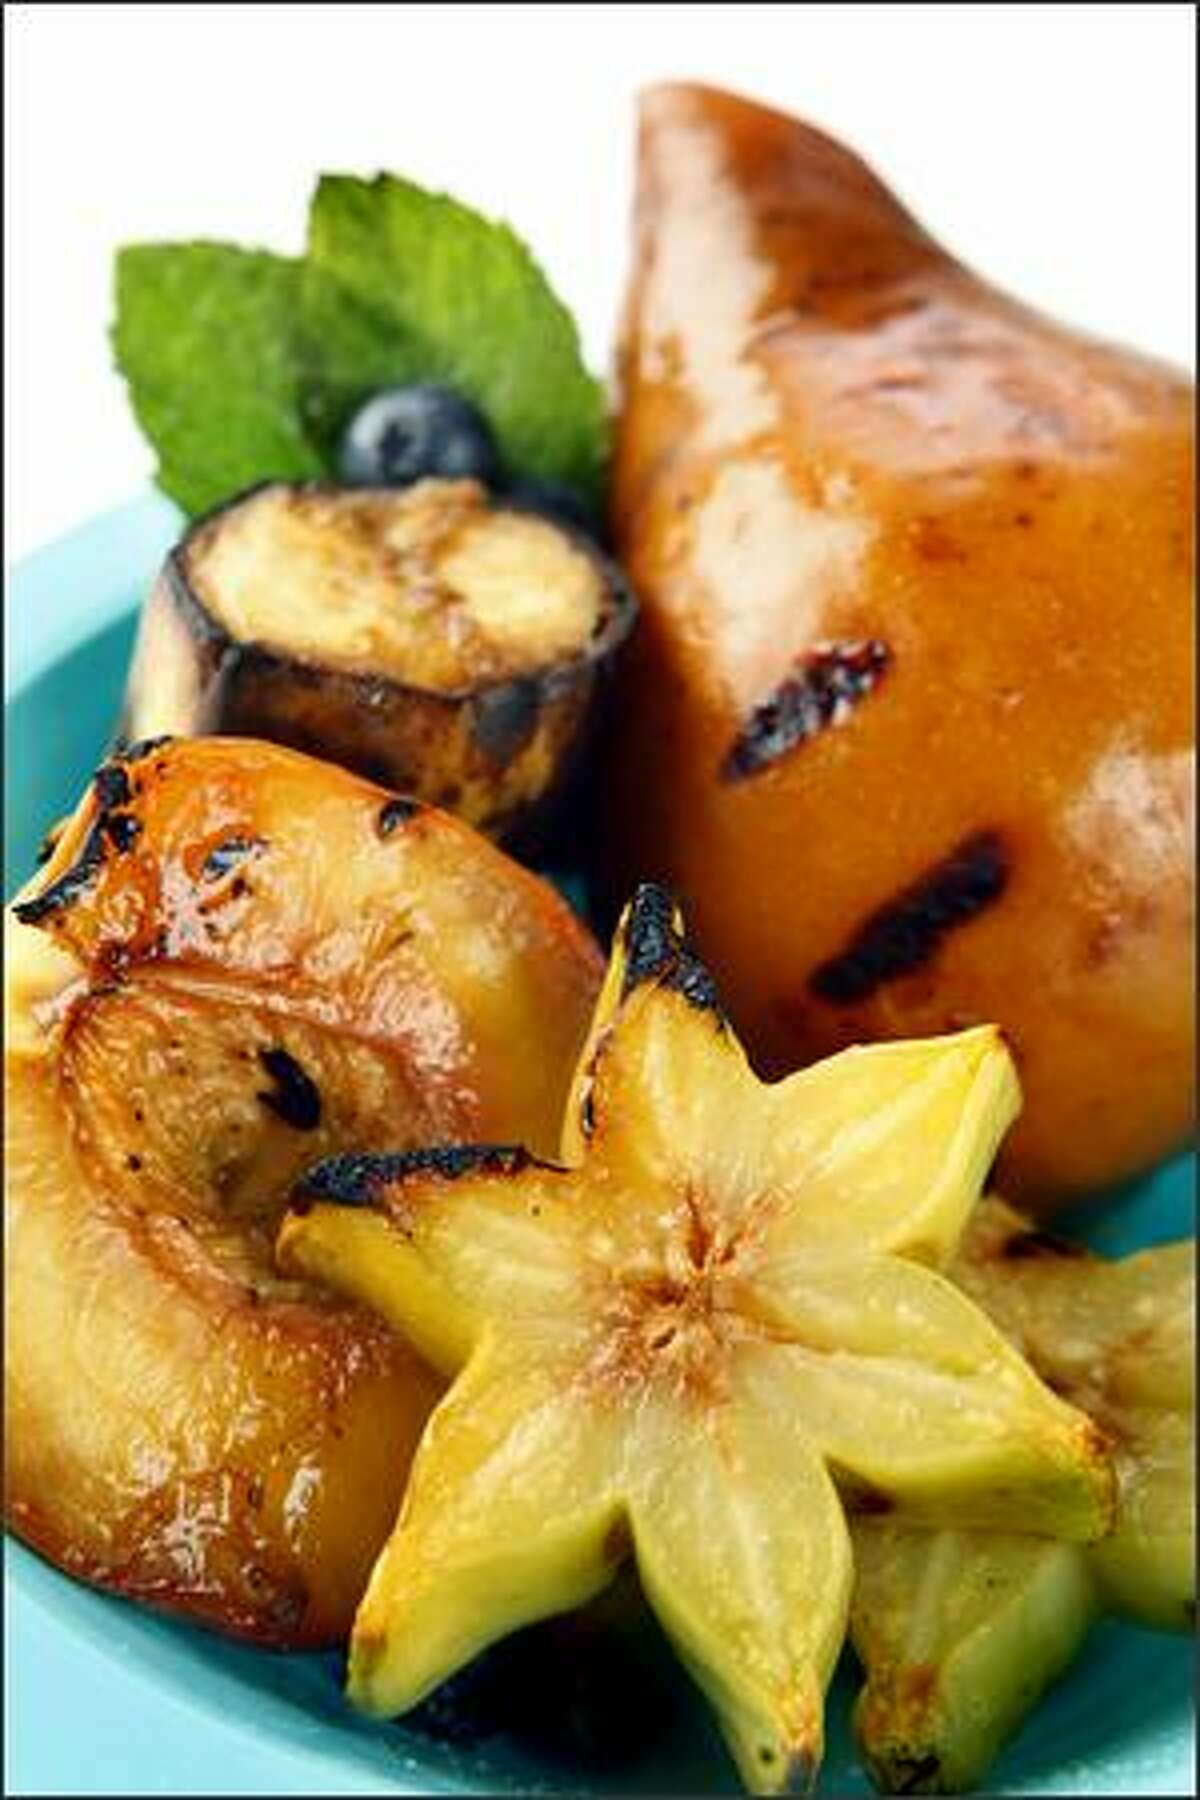 Grilled fruit is brushed with a ginger syrup.